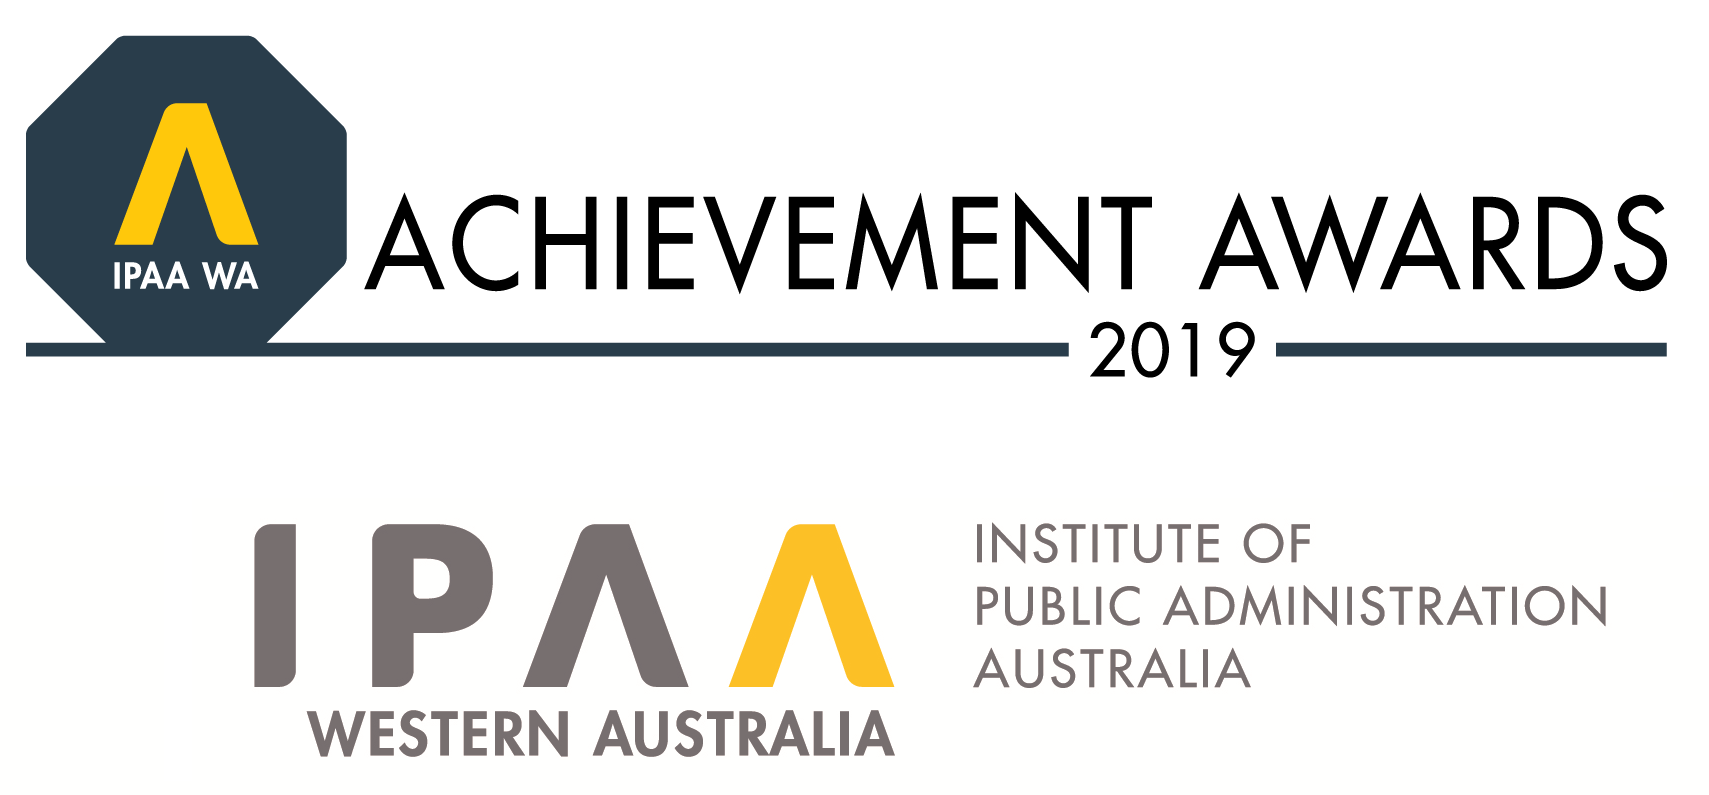 IPAA logo and achievement awards 2019 logo